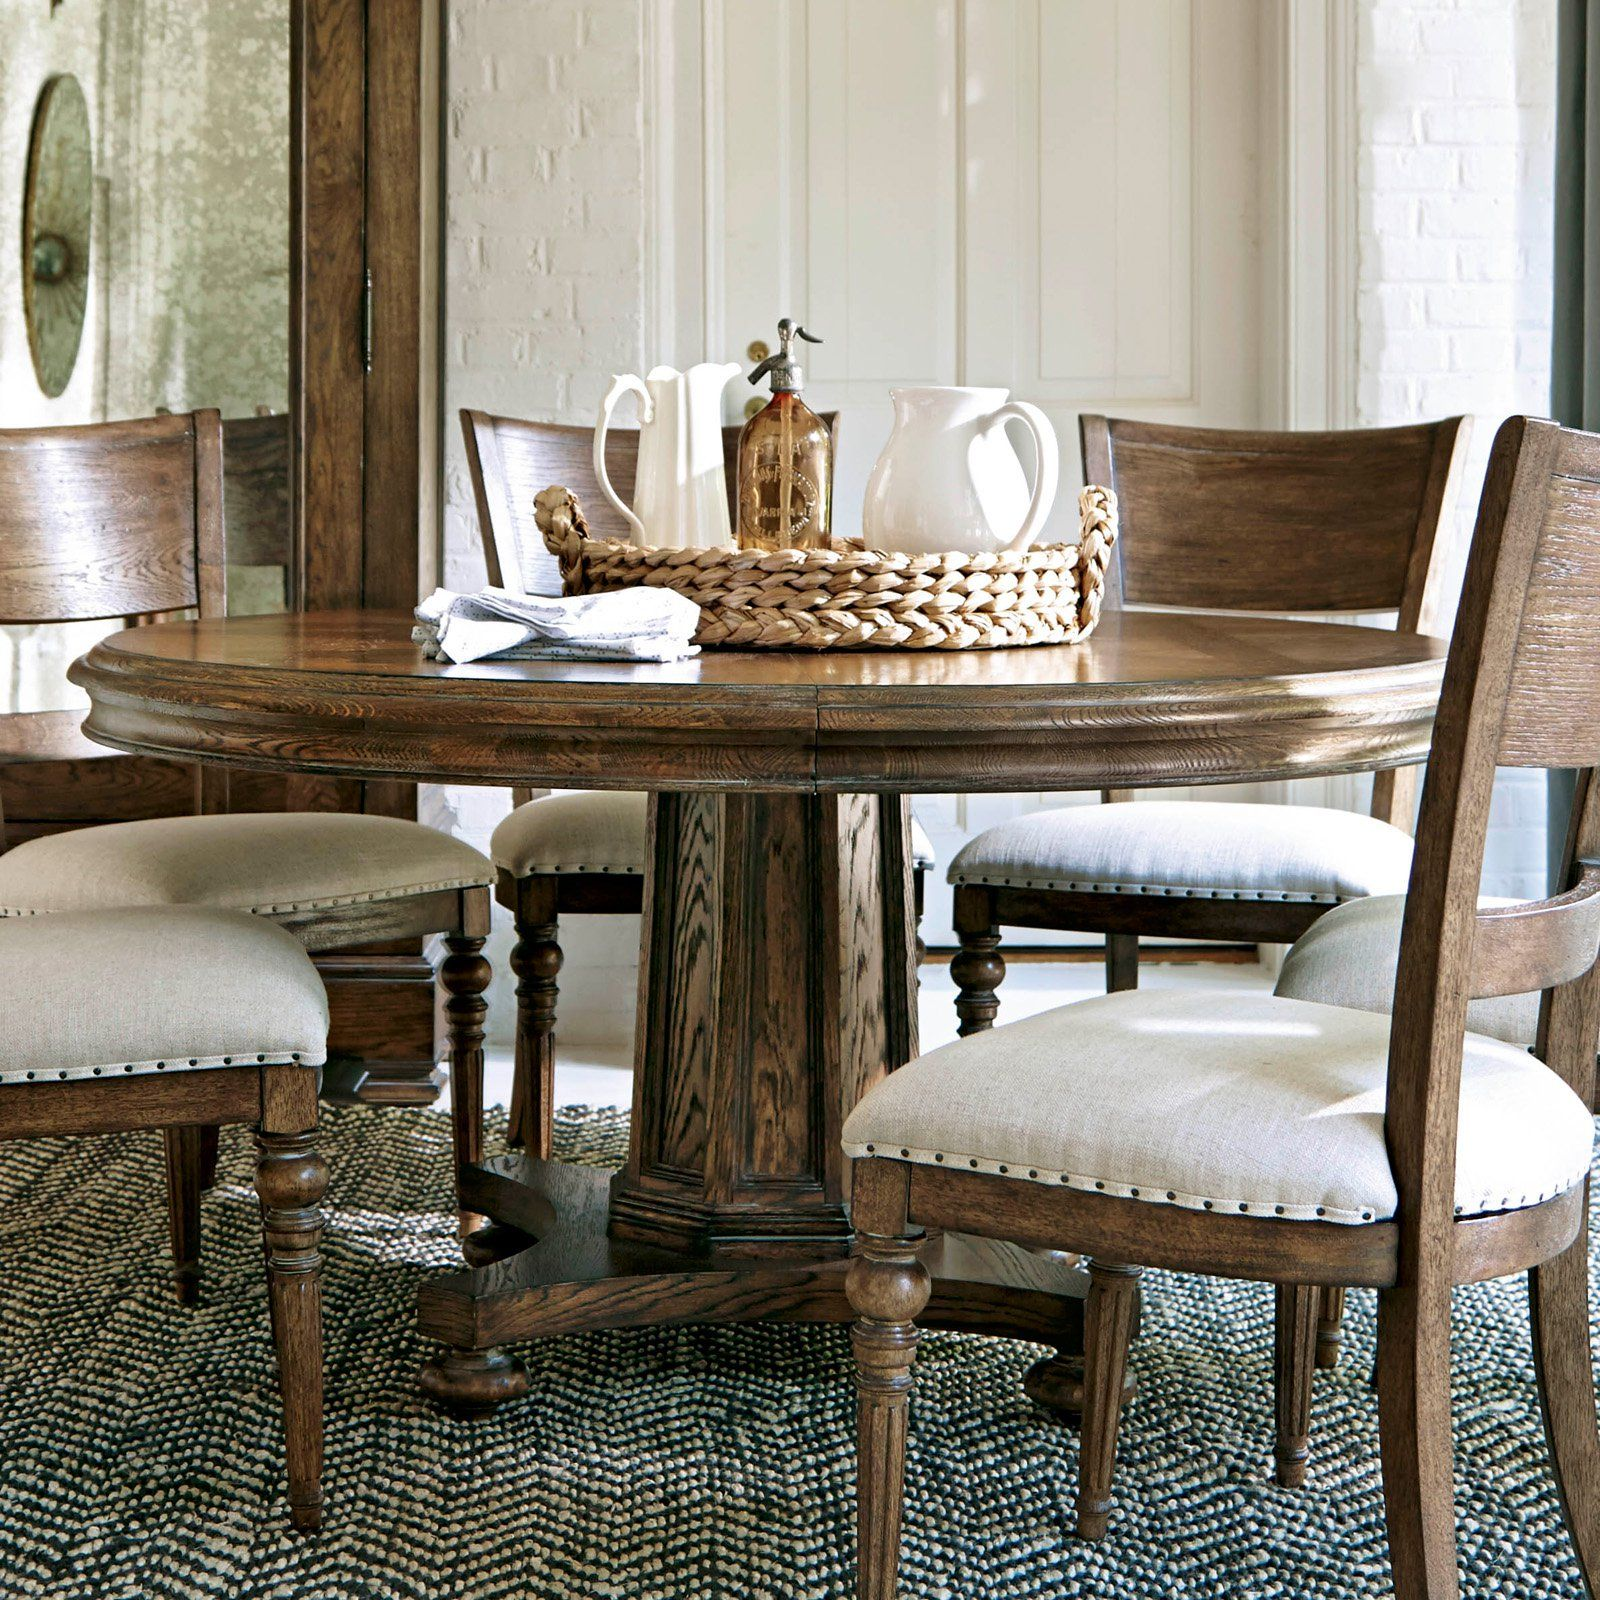 universal furniture new bohemian round table www hayneedle com country kitchen decor on boho chic dining room kitchen dining tables id=40730